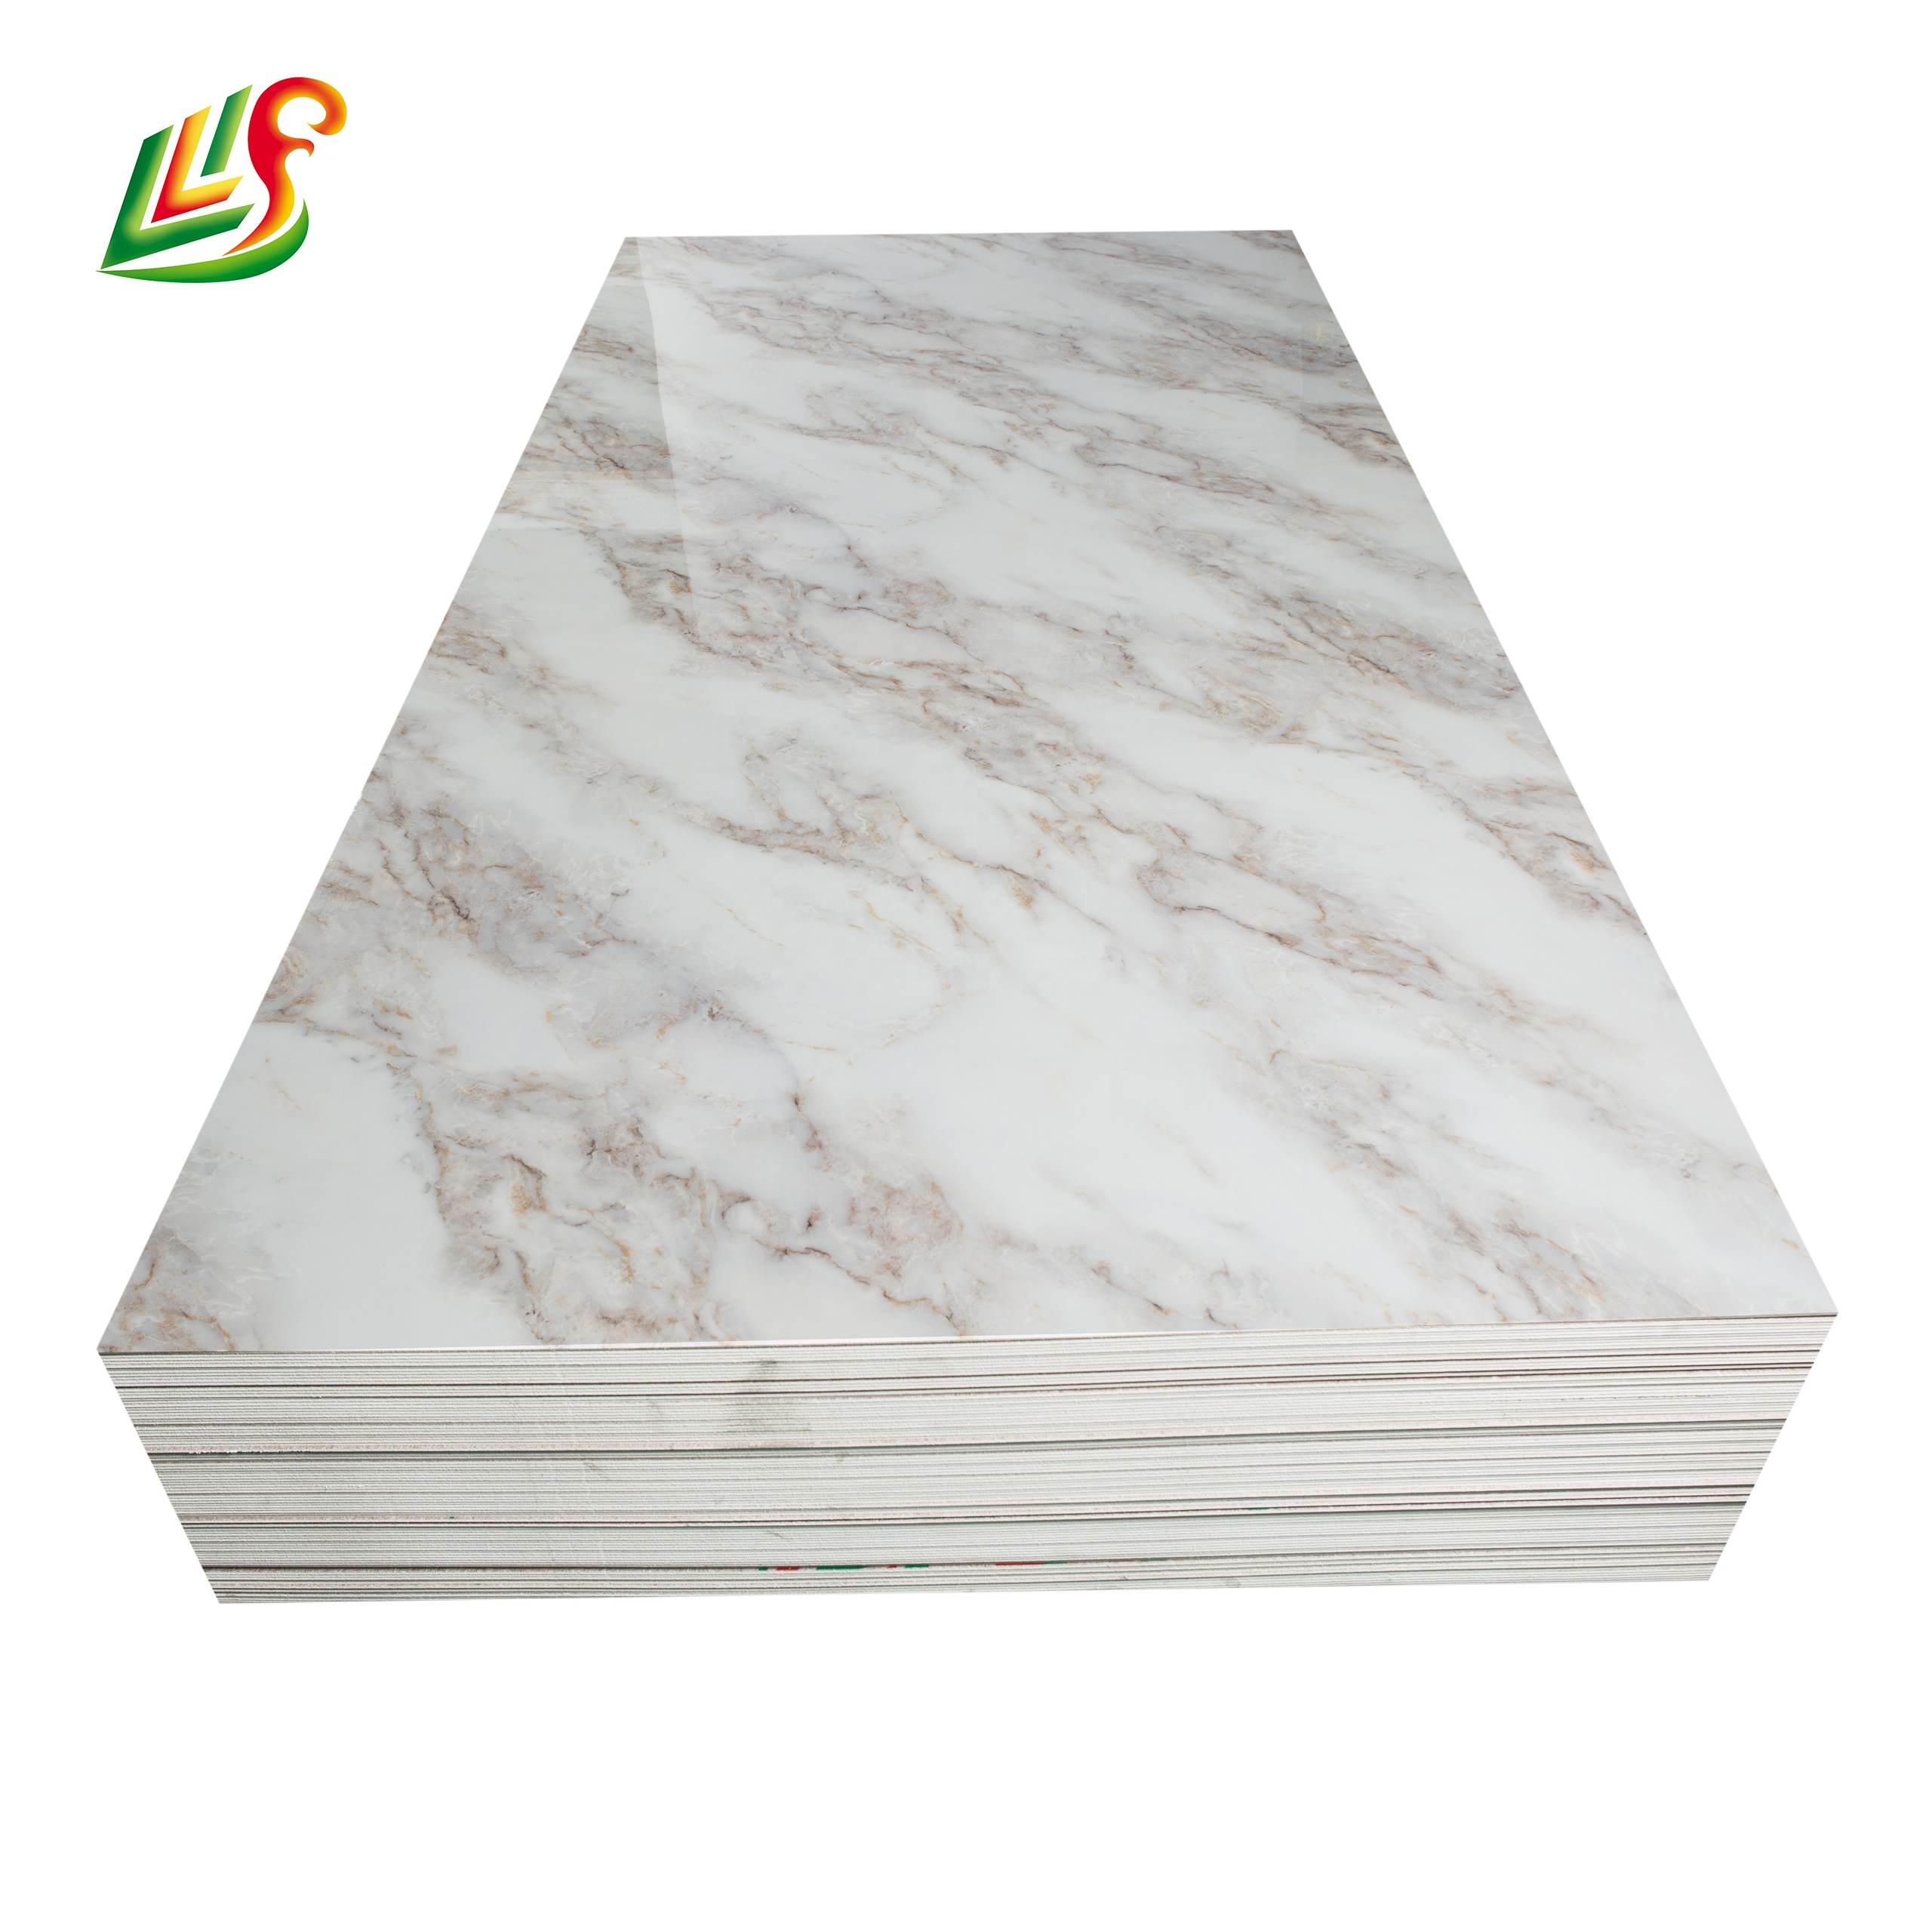 Faux Stone Wall Panels And Pvc Marble Sheet 6mm Thickness 1 22 2 44m Buy 4x8 Decorative Wall Panels Pvc Marble Fire Resistant Decorative Wall Panel Product On Alibaba Com